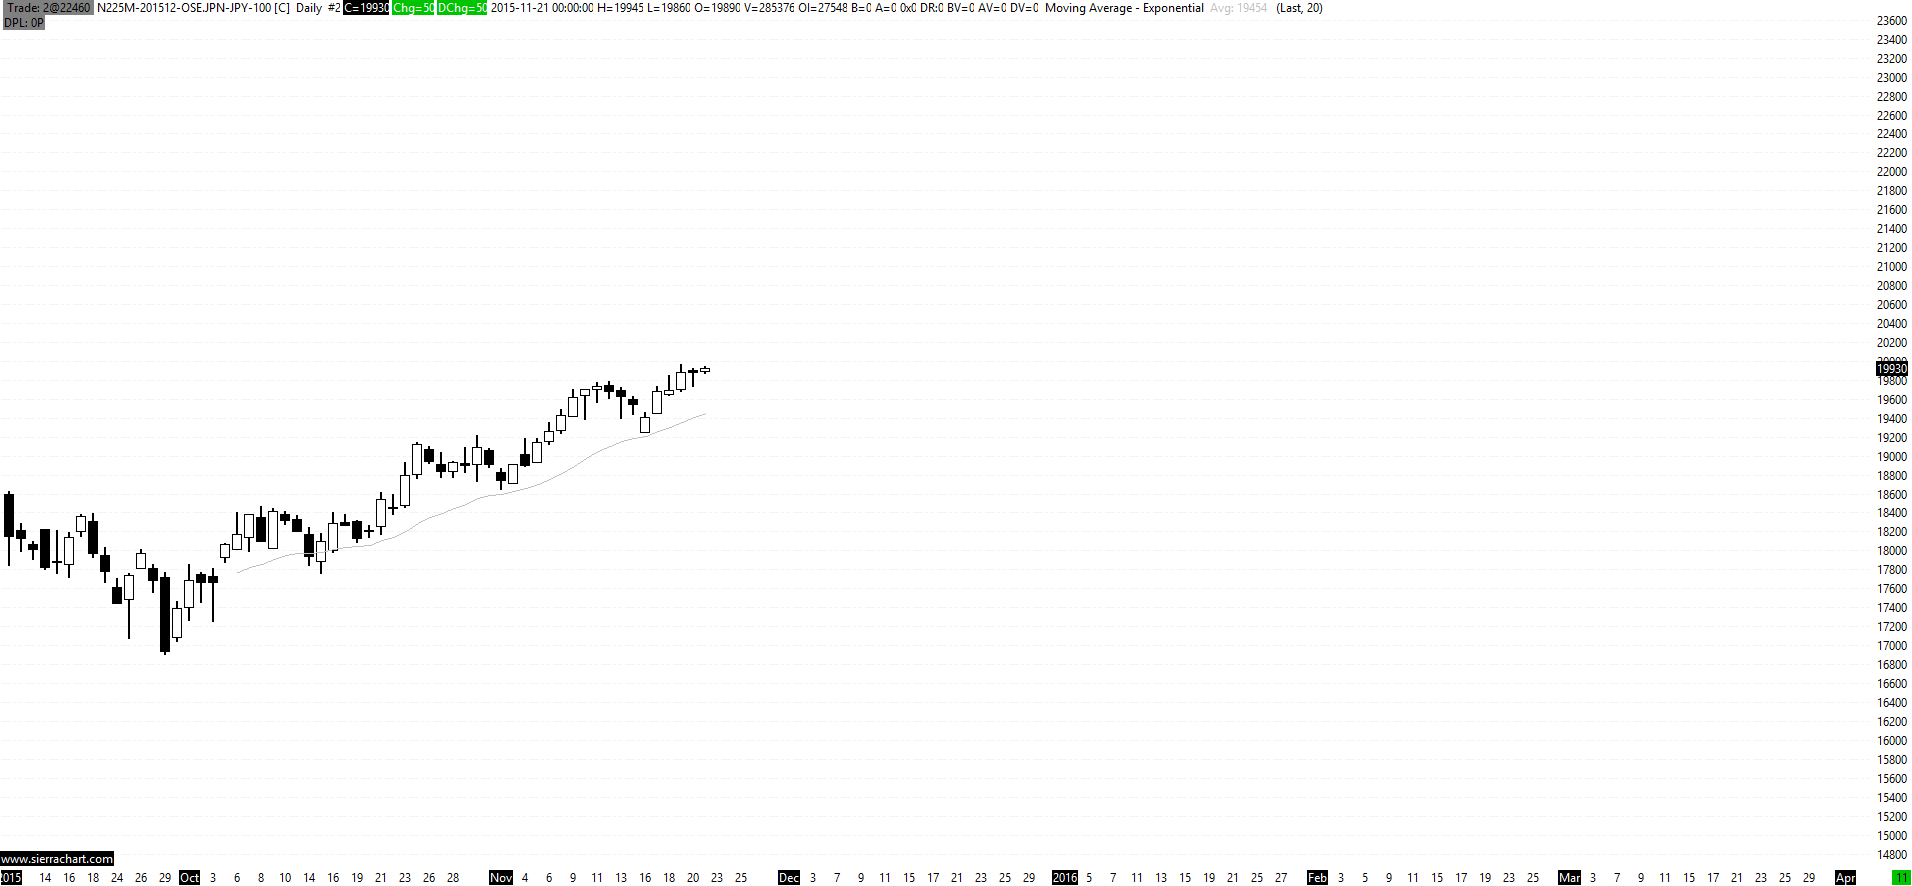 Continuous Nikkei 225 mini futures, daily chart - Support